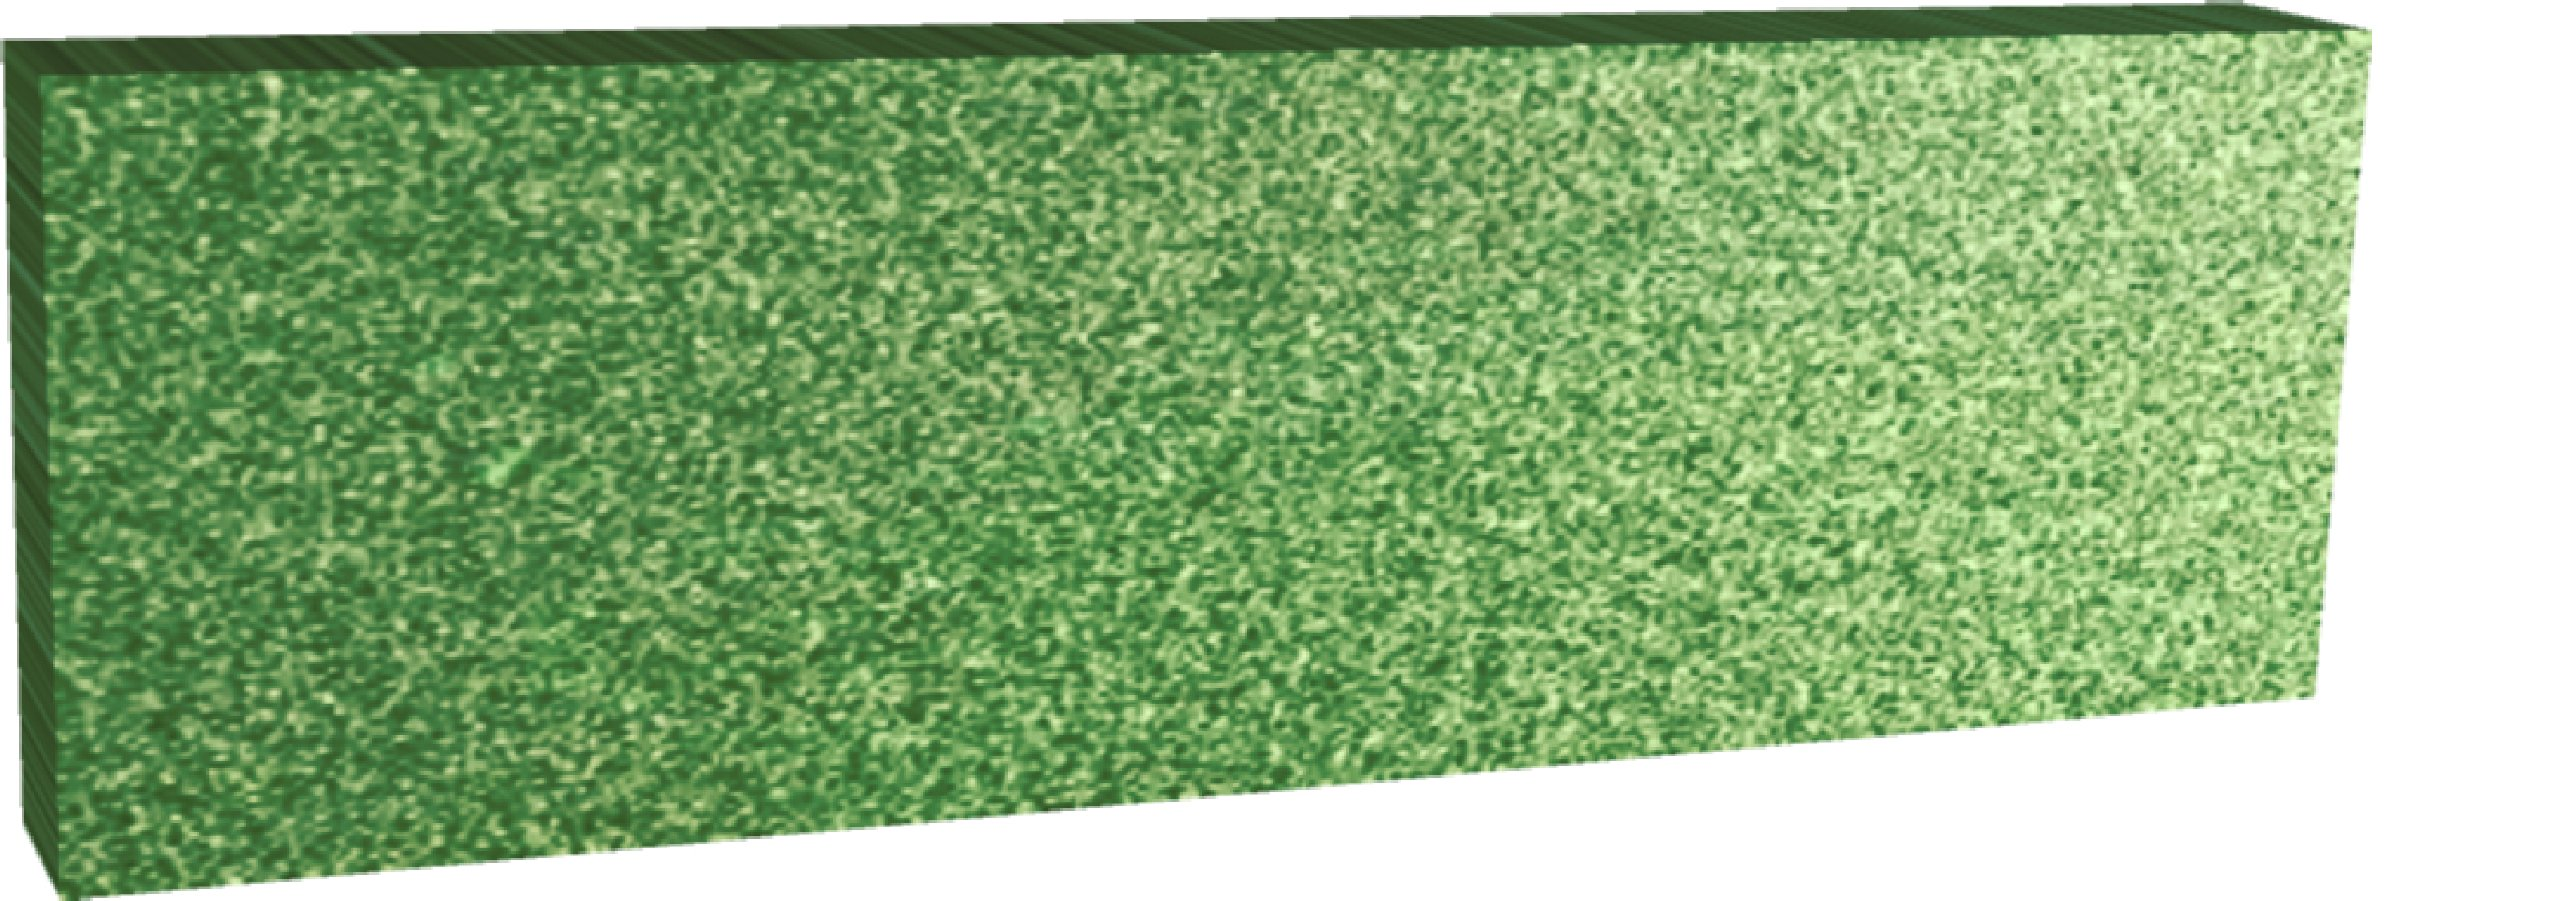 Full case of Styrofoam Green Sheets. 1'' or 2'' or 4'' thickness (Email us with your preference)